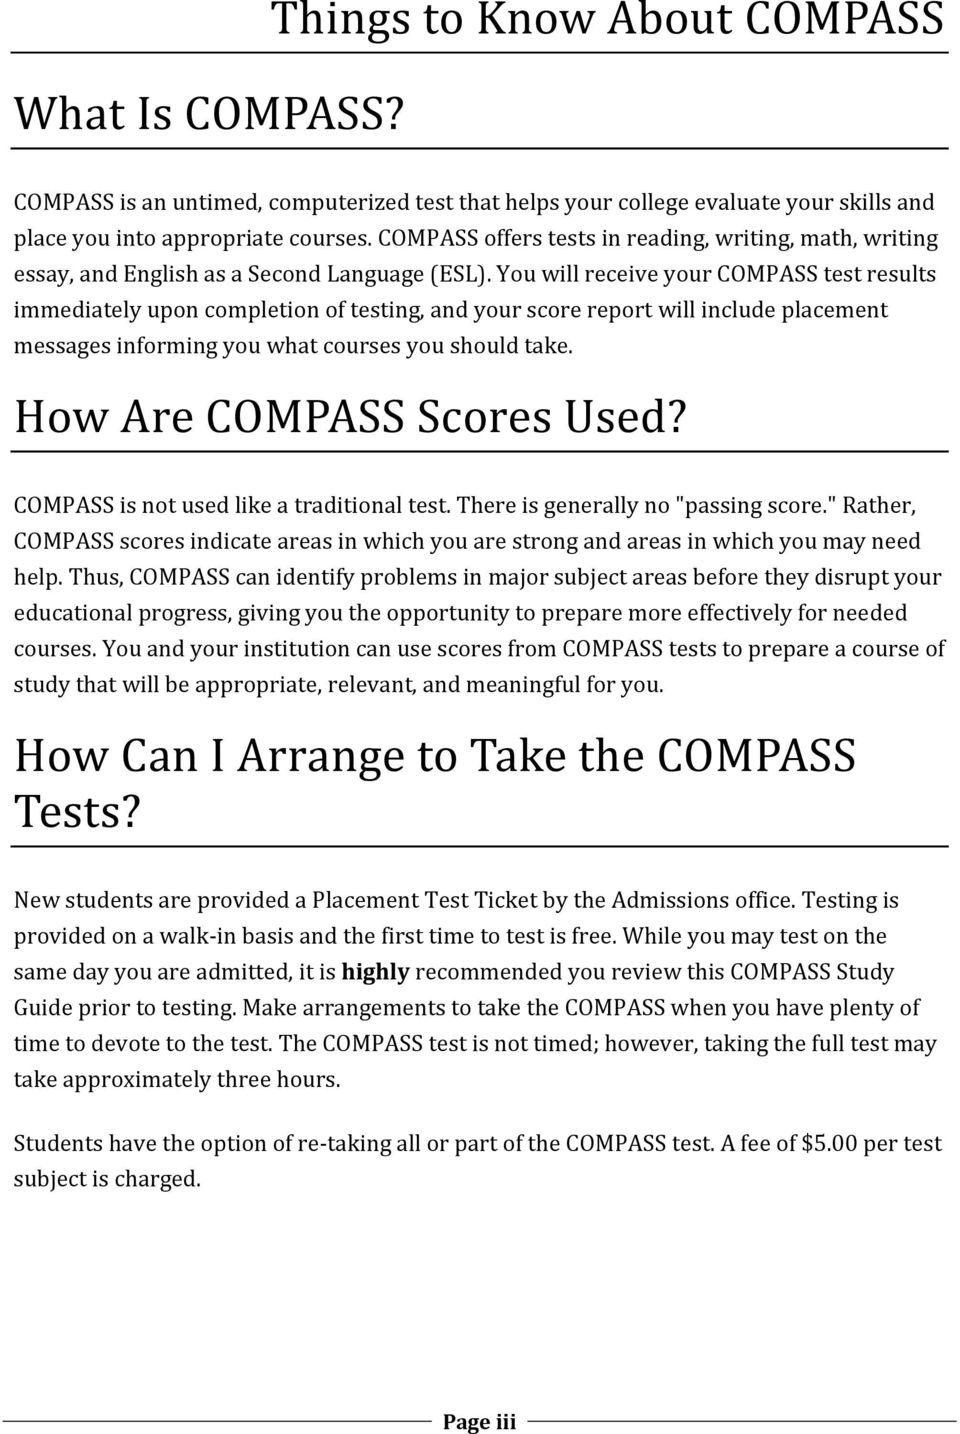 cuny essay test Welcome to the testing center at queensborough community college at the testing center, we administer the cuny assessment test (cats) in writing, reading, and math.